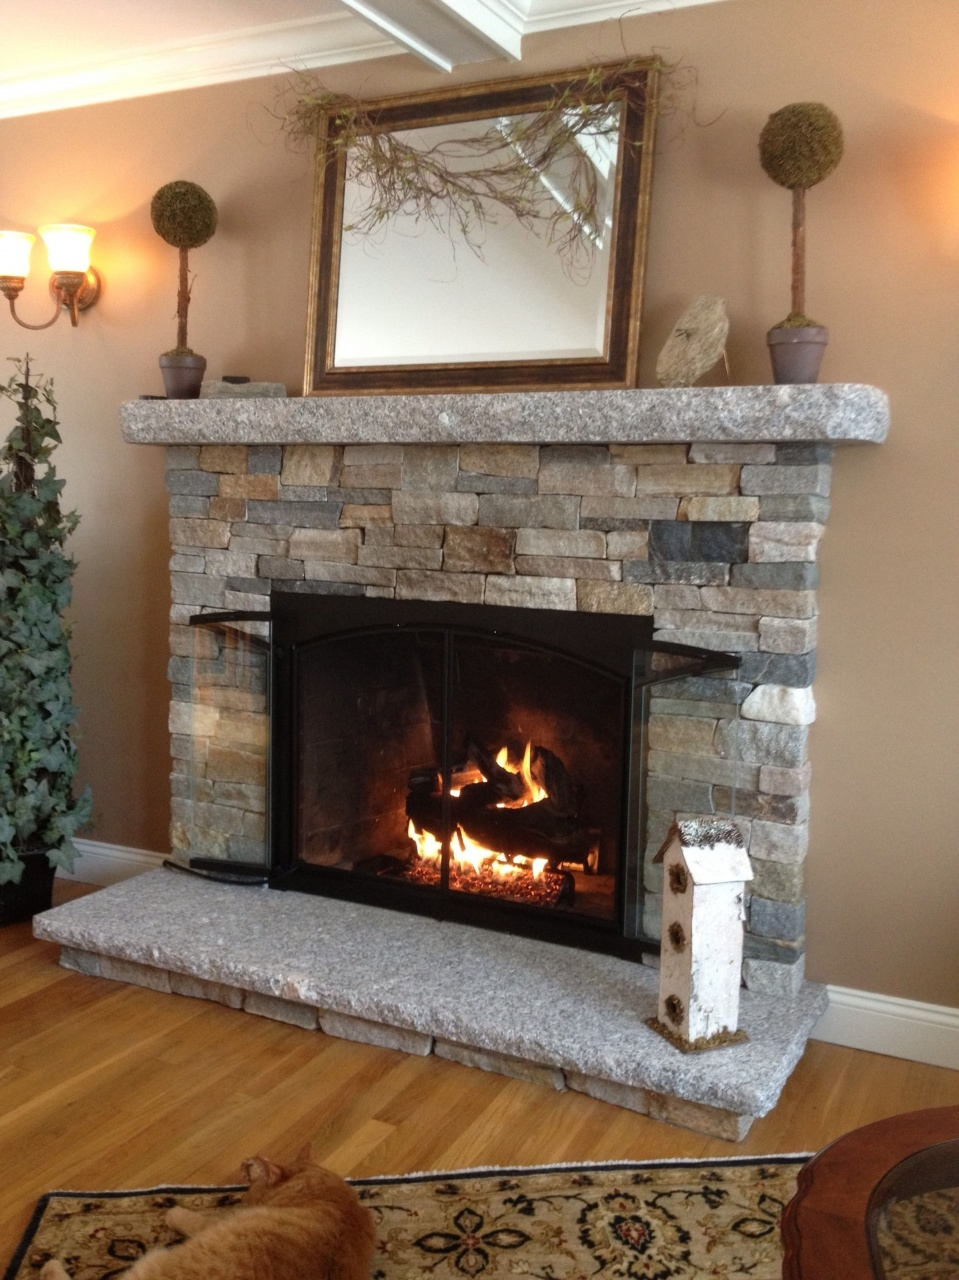 granite slab for fireplace hearth interior find stone fireplace ideas fits perfectly to your from granite slab for fireplace hearth 2